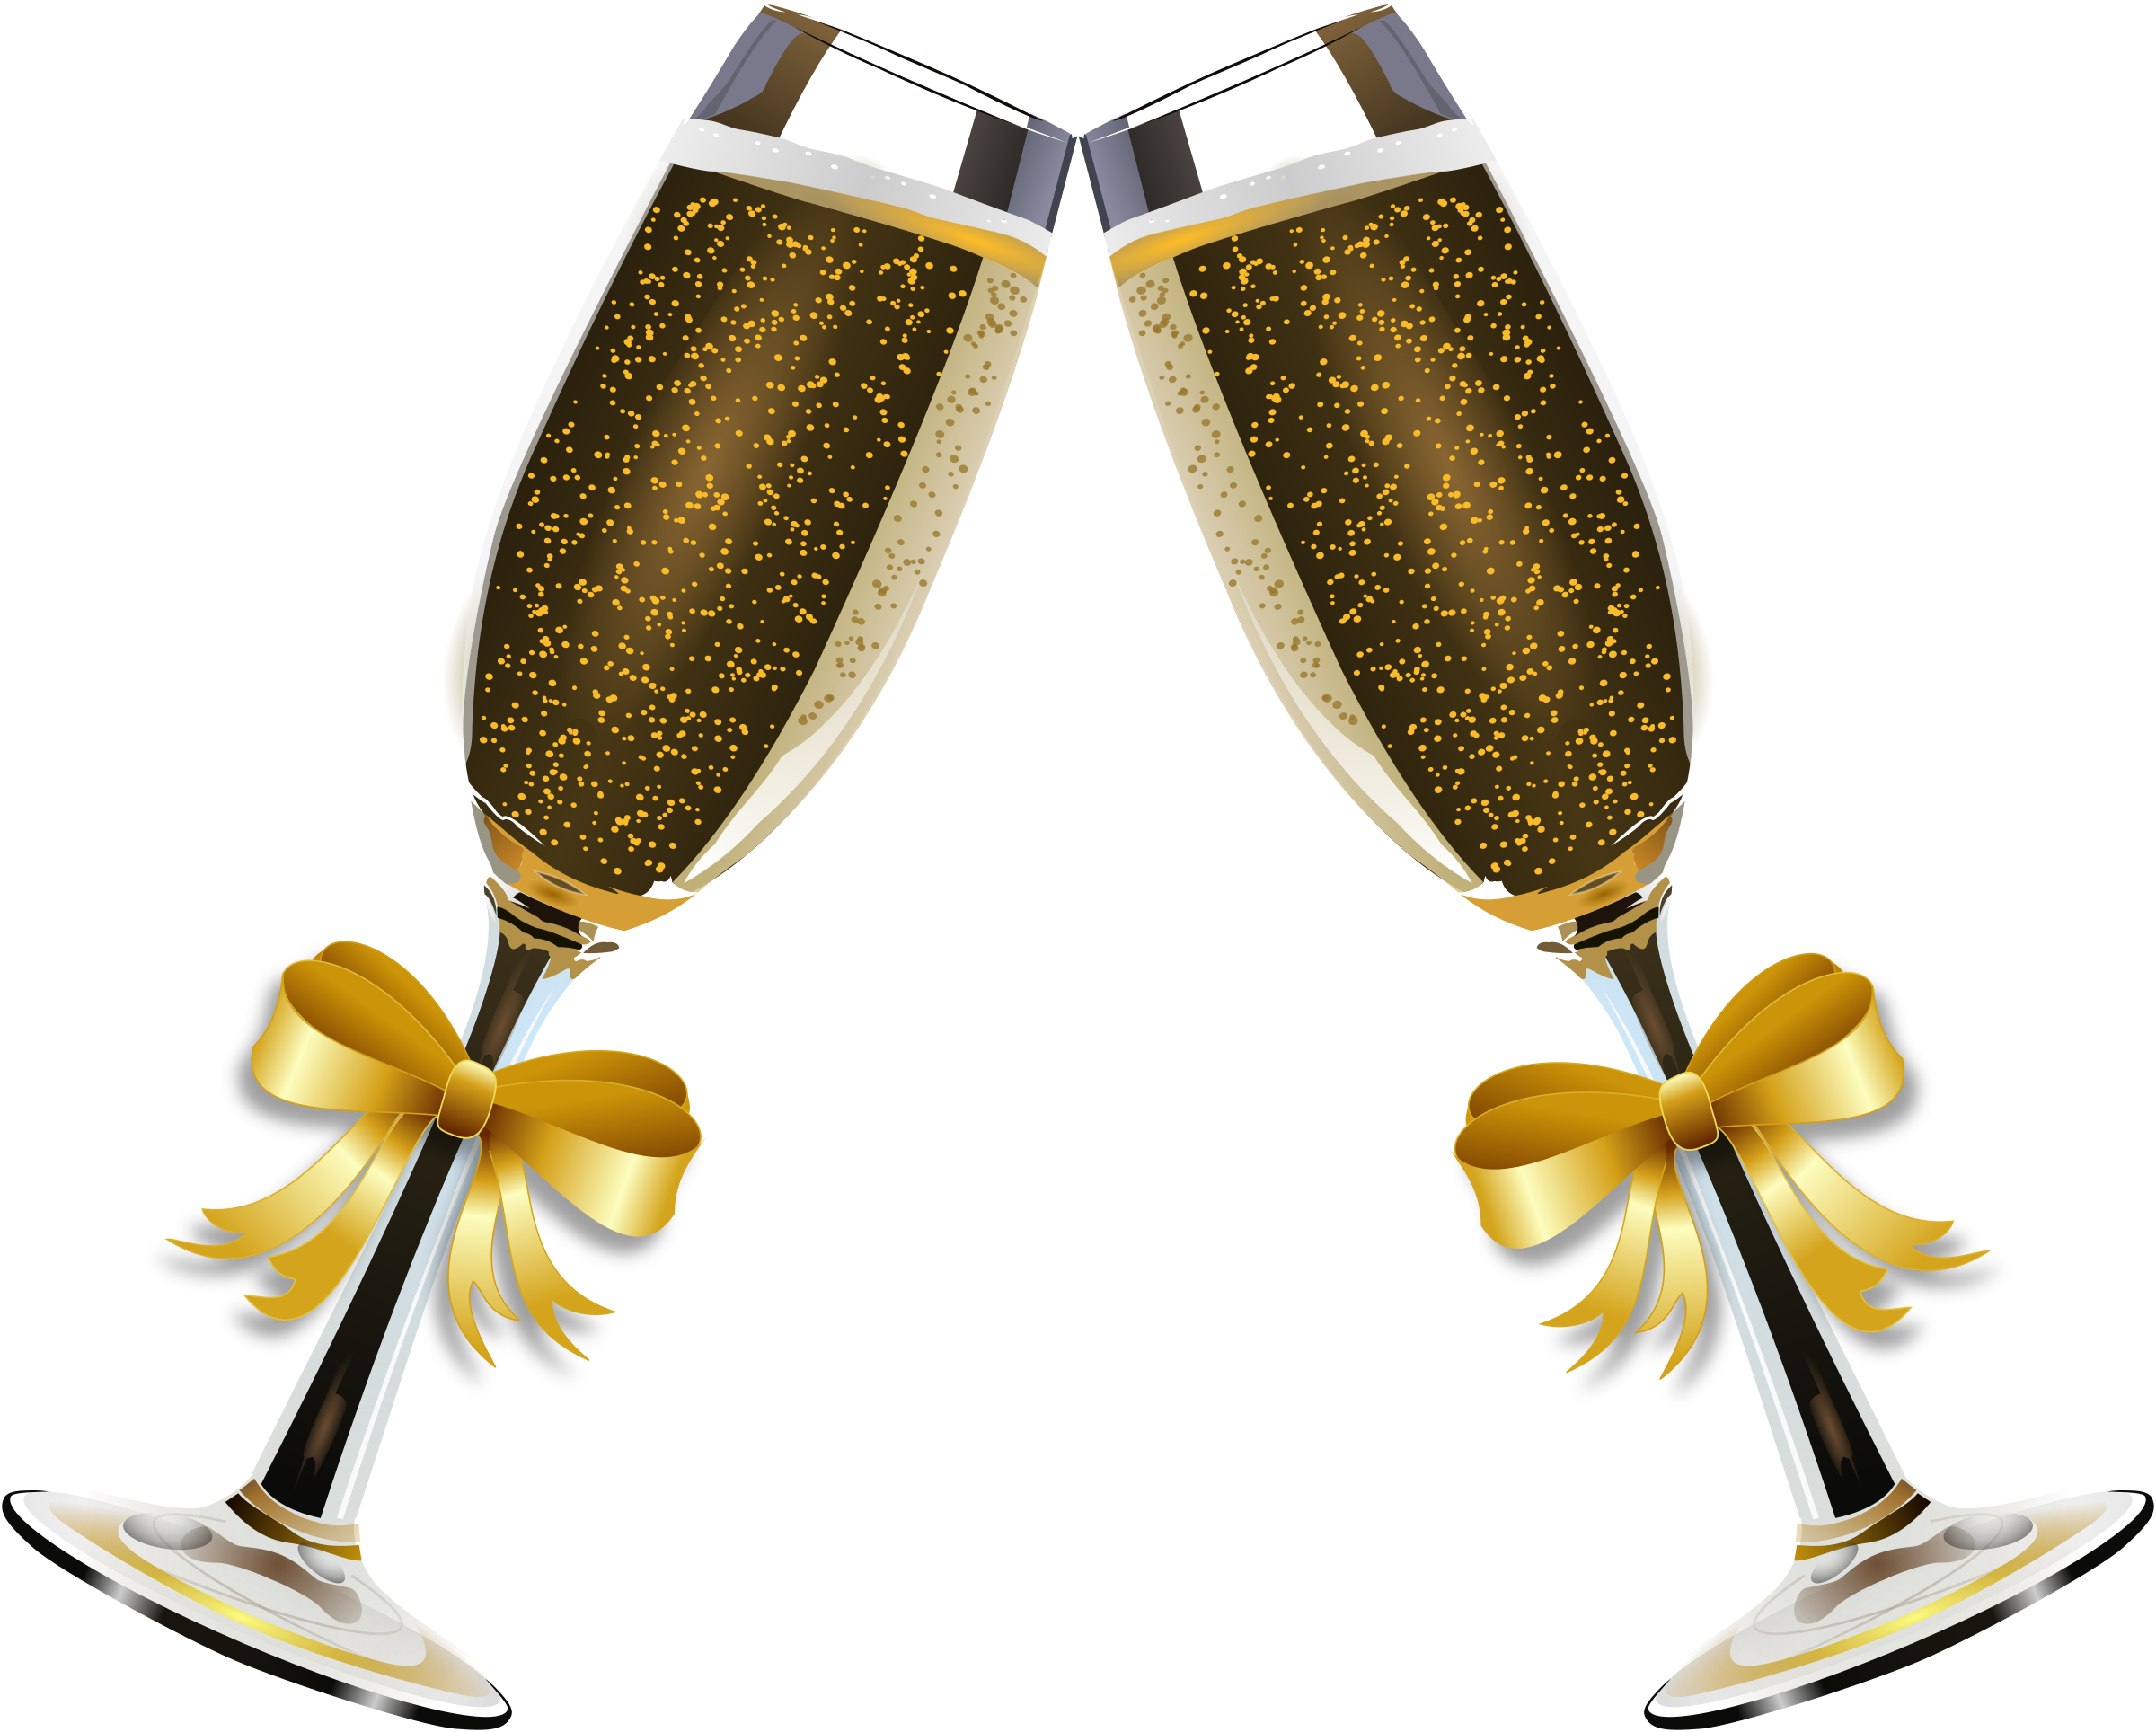 freeuse Toaster clipart transparent background. Champagne glass remix big